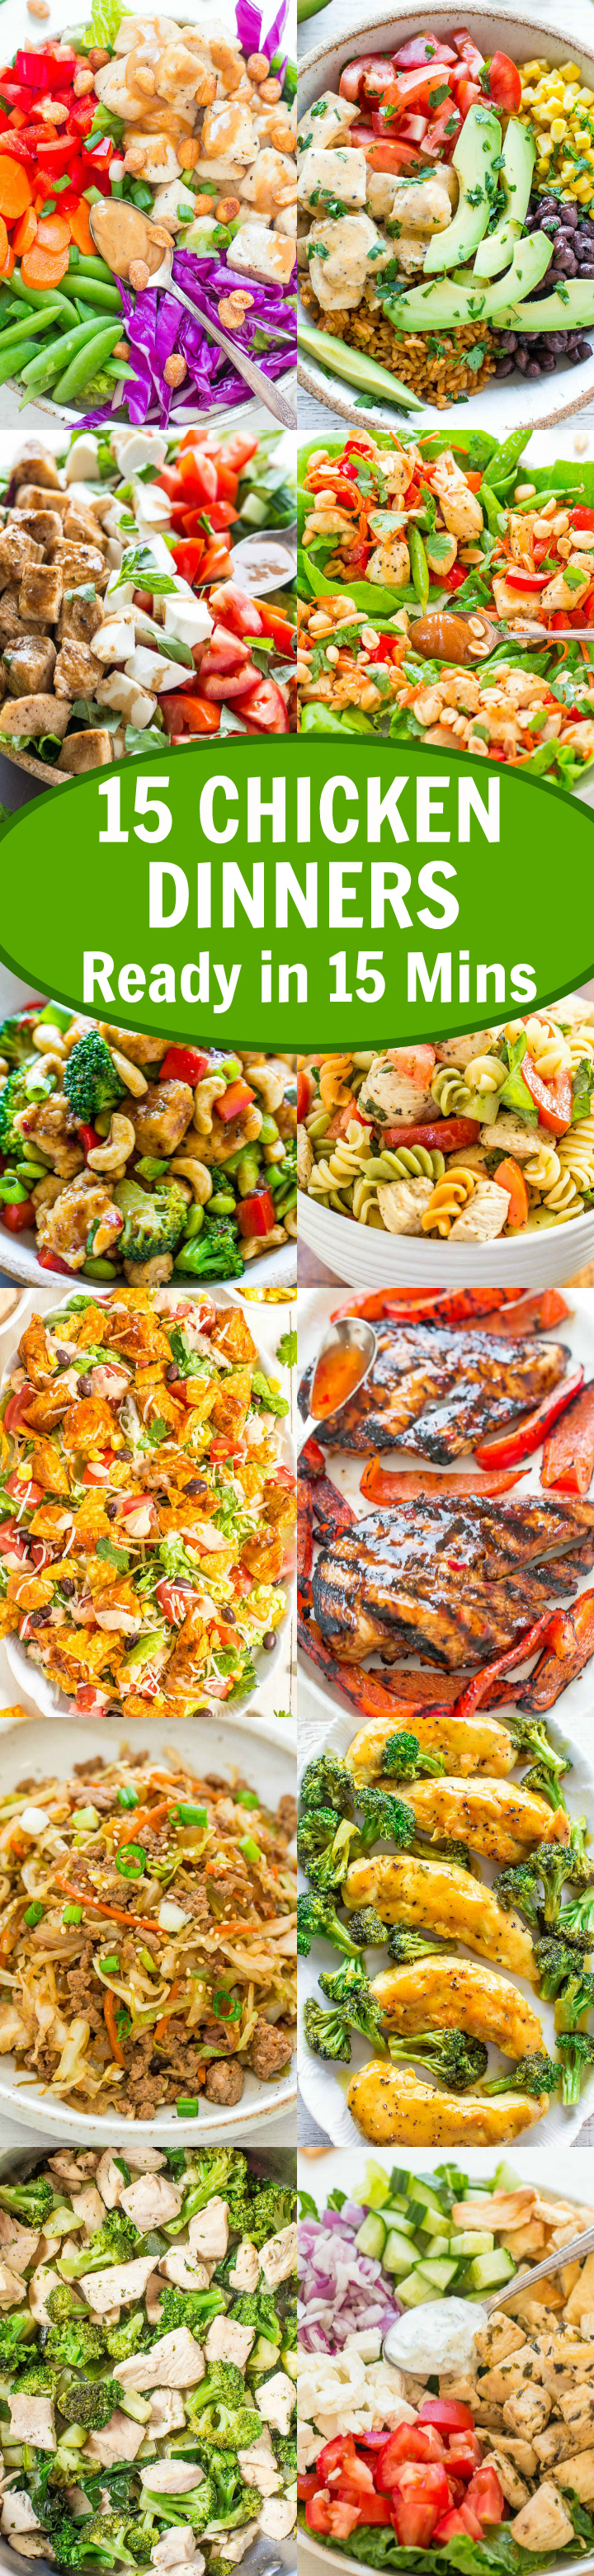 15 chicken dinners ready in 15 minutes - EASY dinners ready in an instant and PERFECT for busy nights! DELICIOUS, healthy and guaranteed to please the harshest critics of dinner!